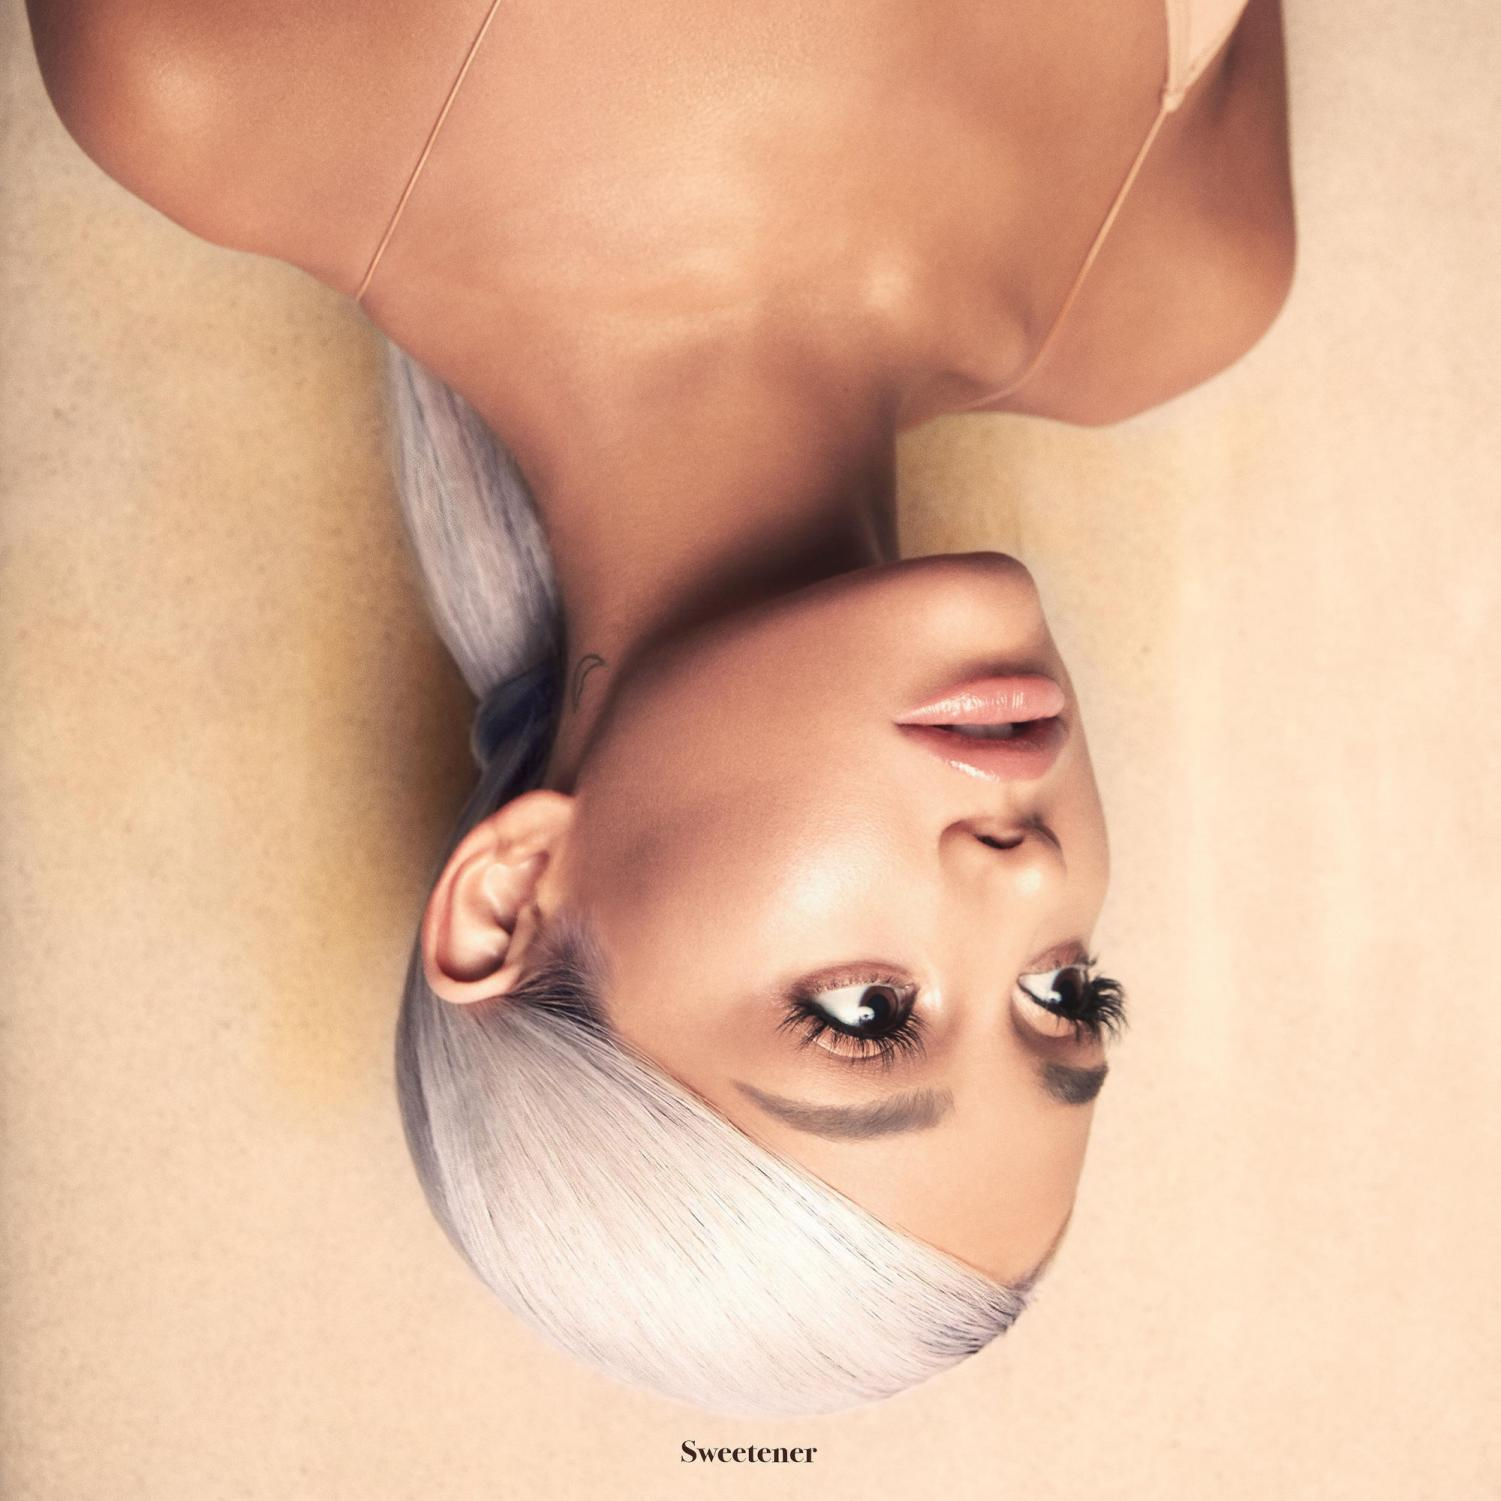 Ariana Grande's cover for her fourth album, Sweetener